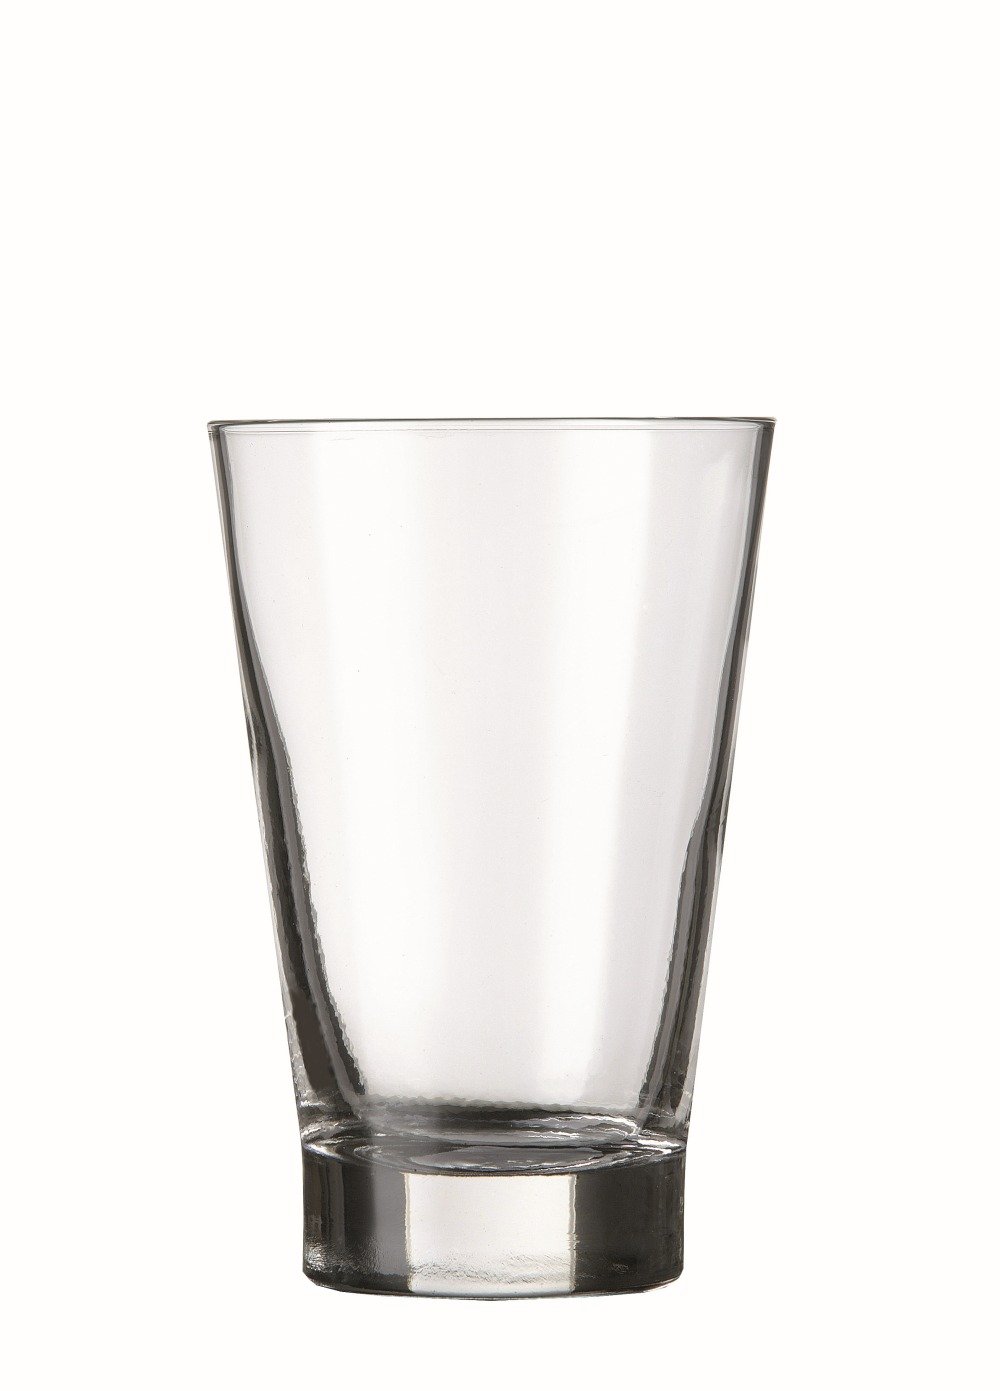 royal_leerdam_tumbler_york_21cl.jpg